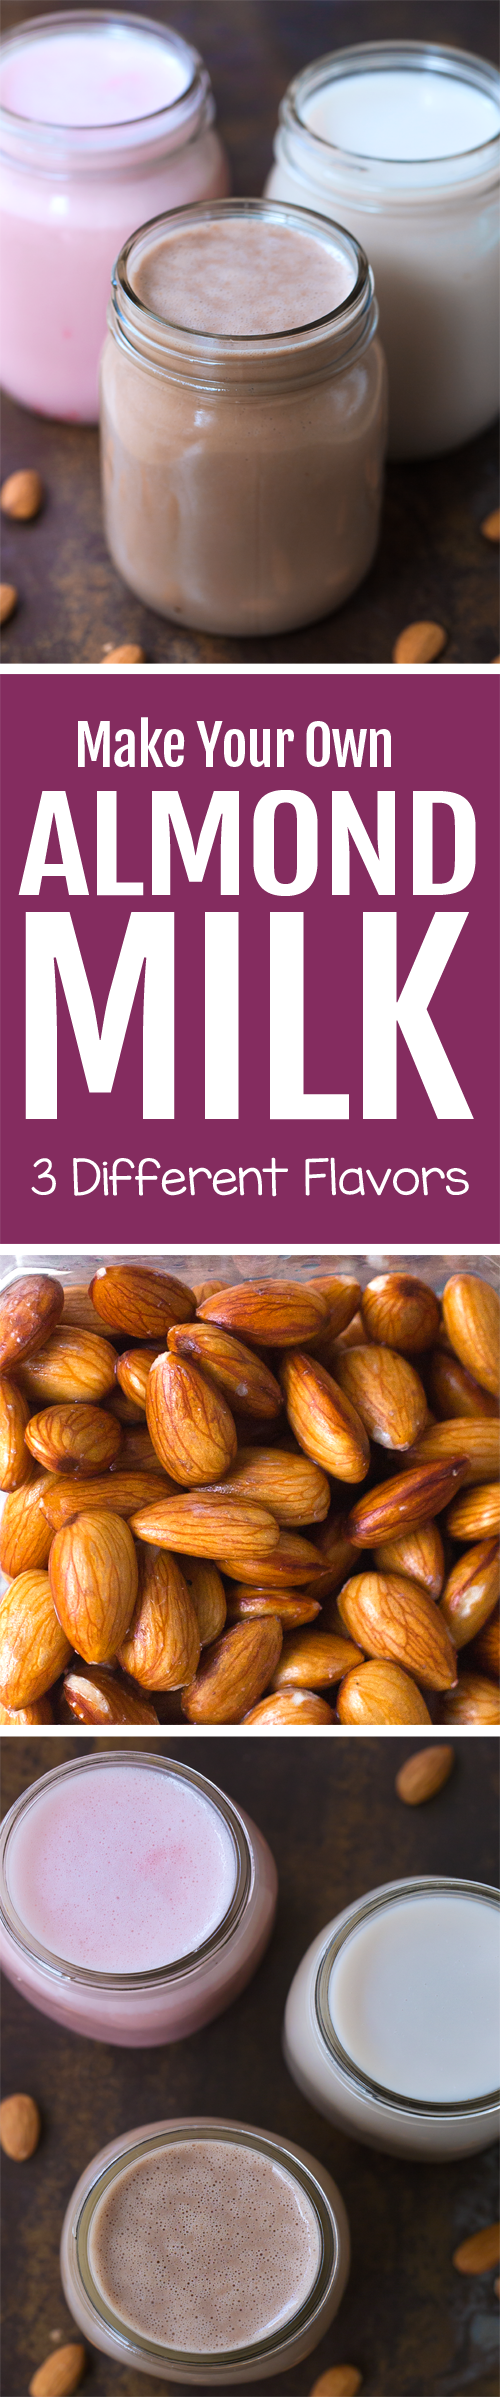 How To Make Your Own Almond Milk In Chocolate Strawberry